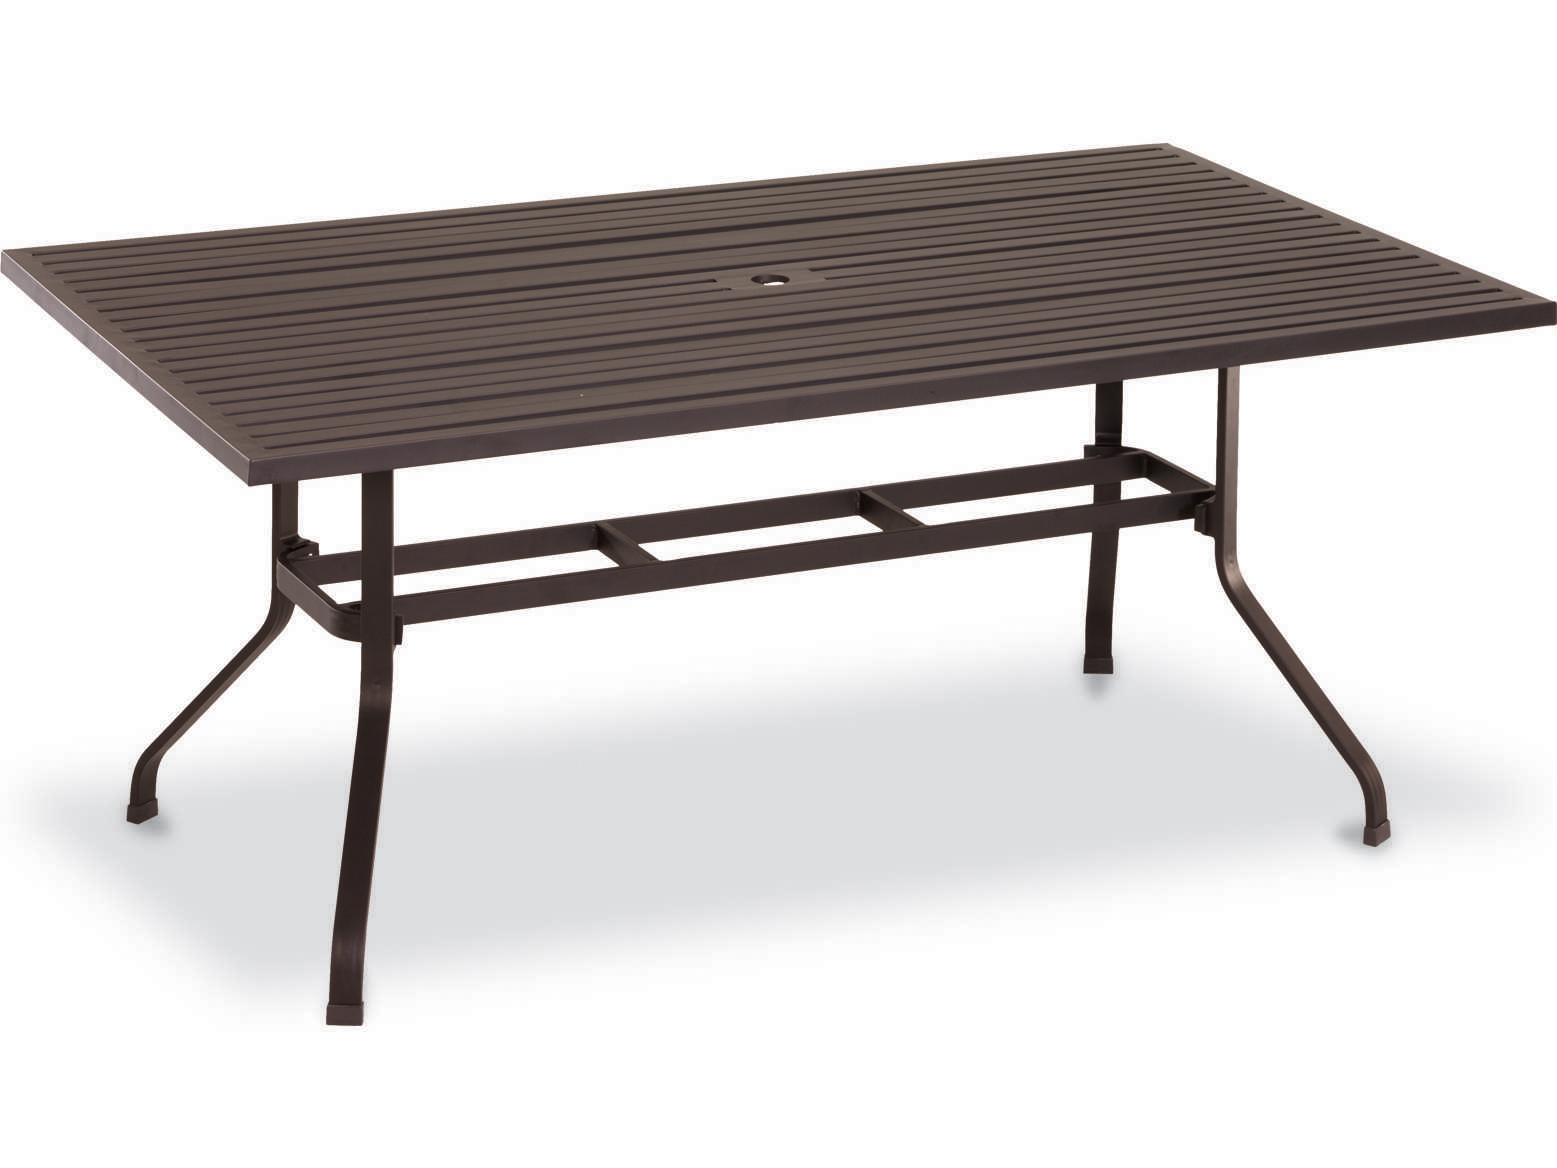 sunset west quick ship la jolla aluminum 72 x 48 rectangular dining table 401 t72. Black Bedroom Furniture Sets. Home Design Ideas